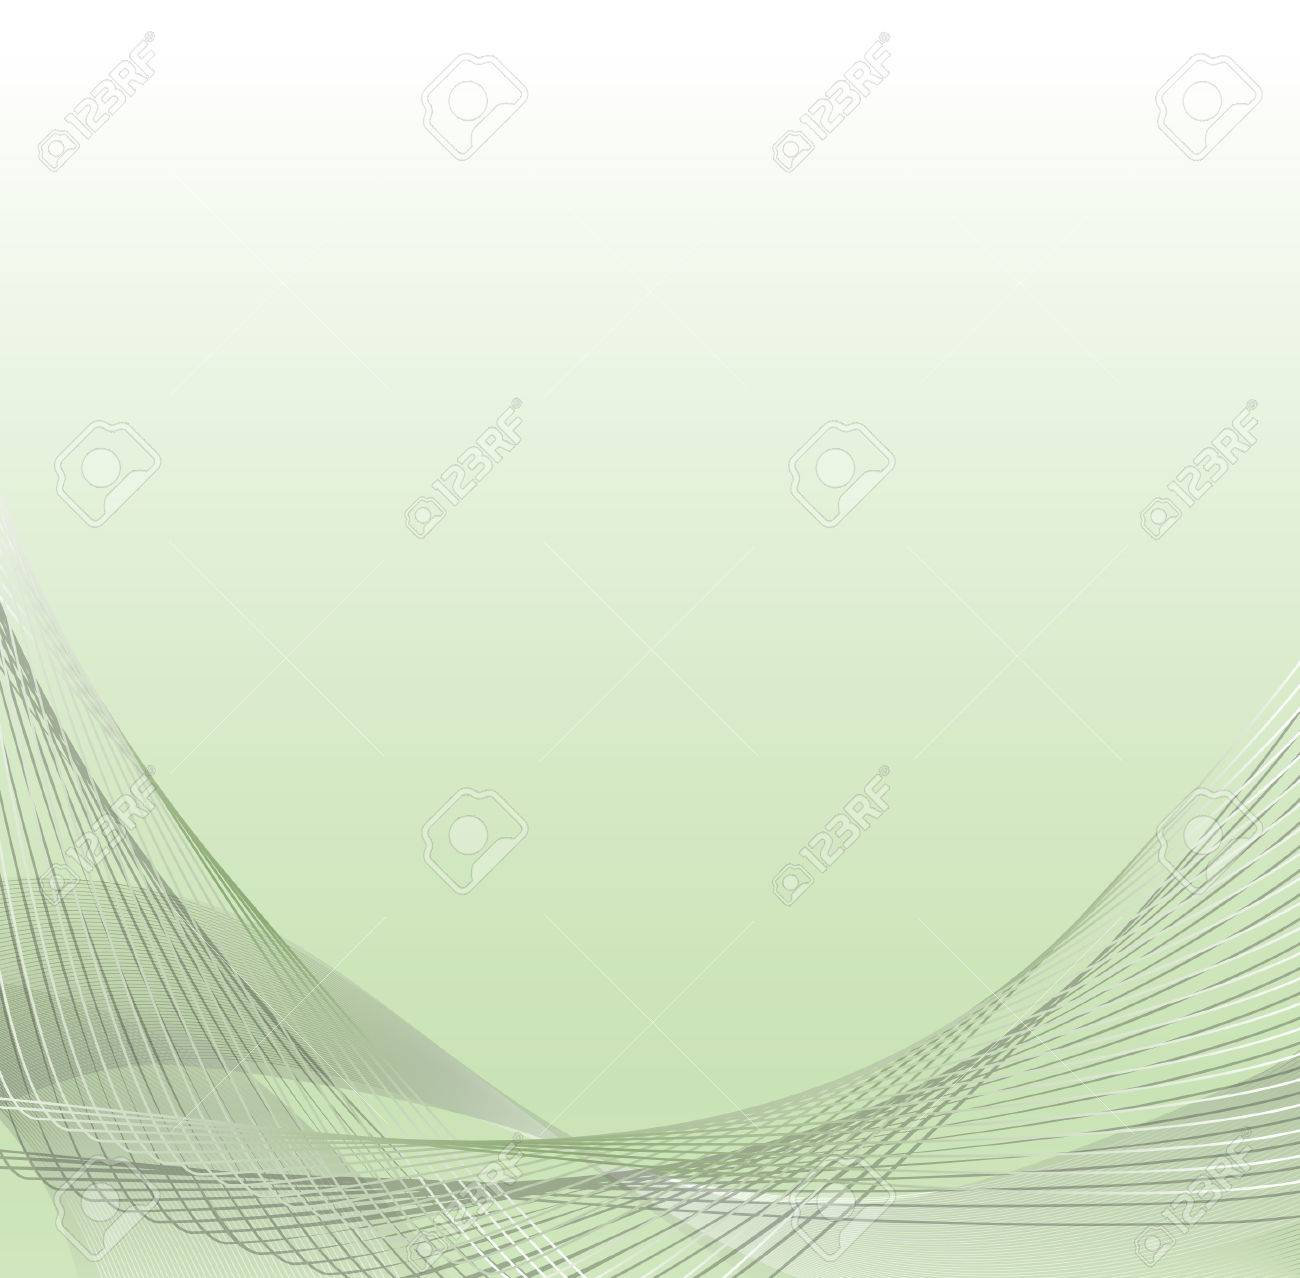 Abstract green waves - project for business - cards.  illustration Stock Vector - 8686712